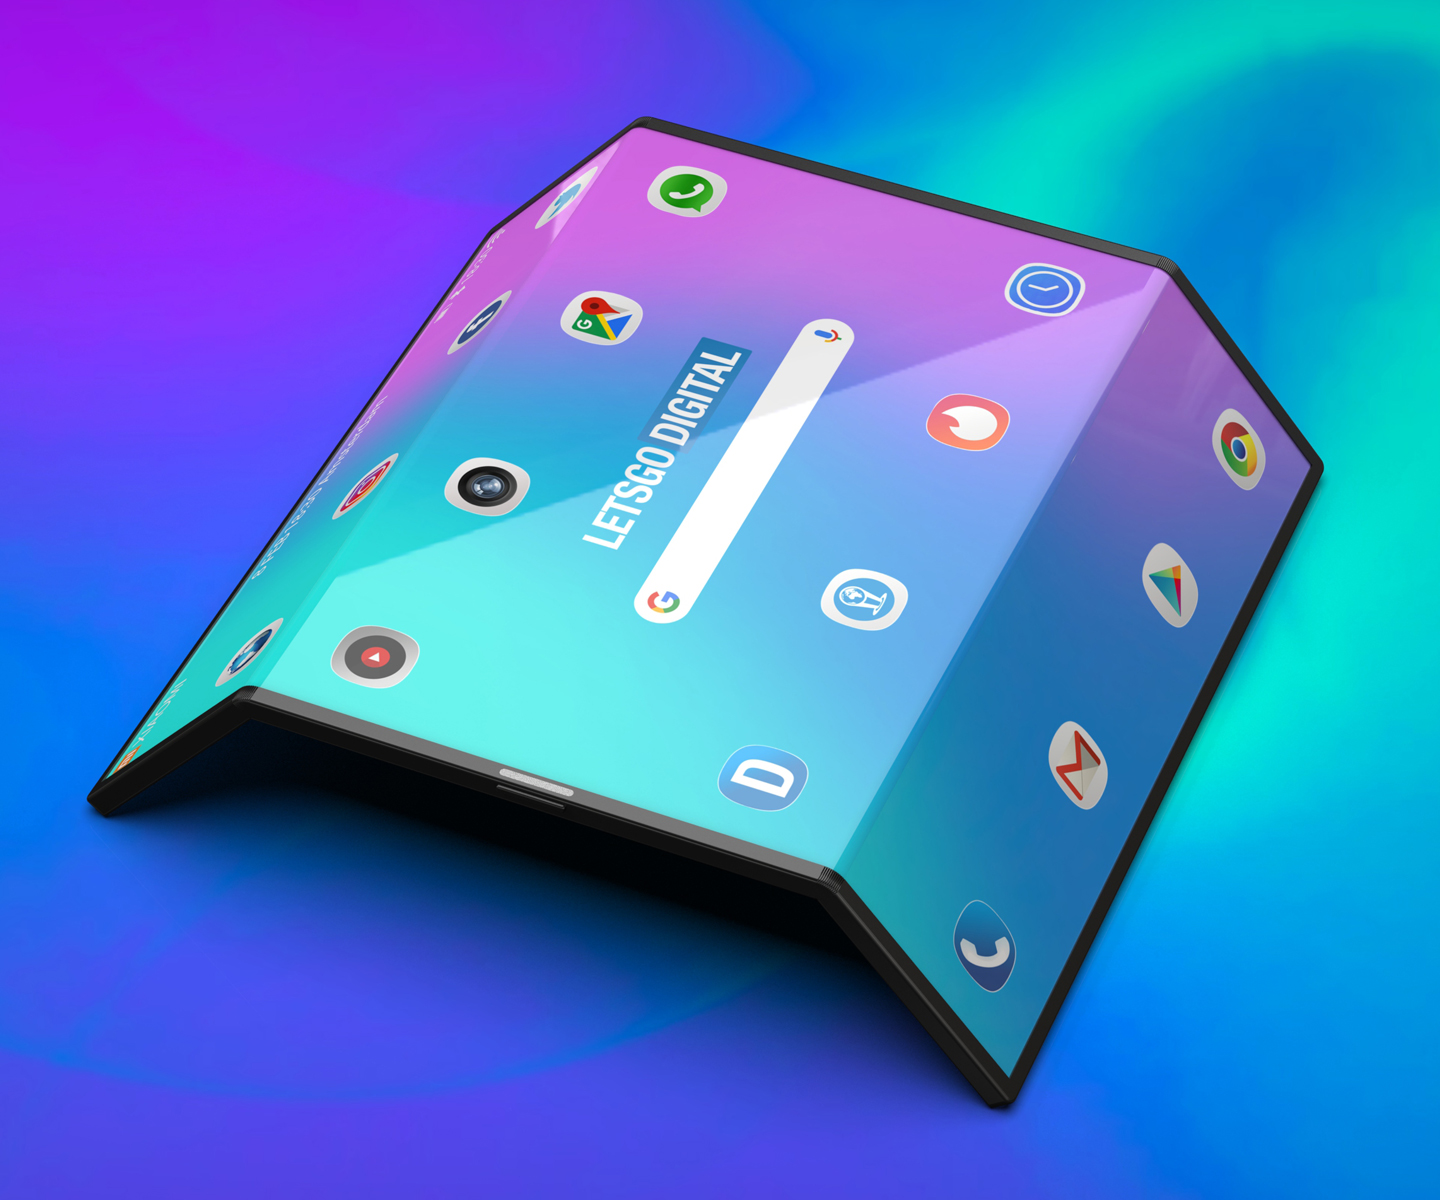 Xiaomi foldable smartphone unfolds into a tablet device